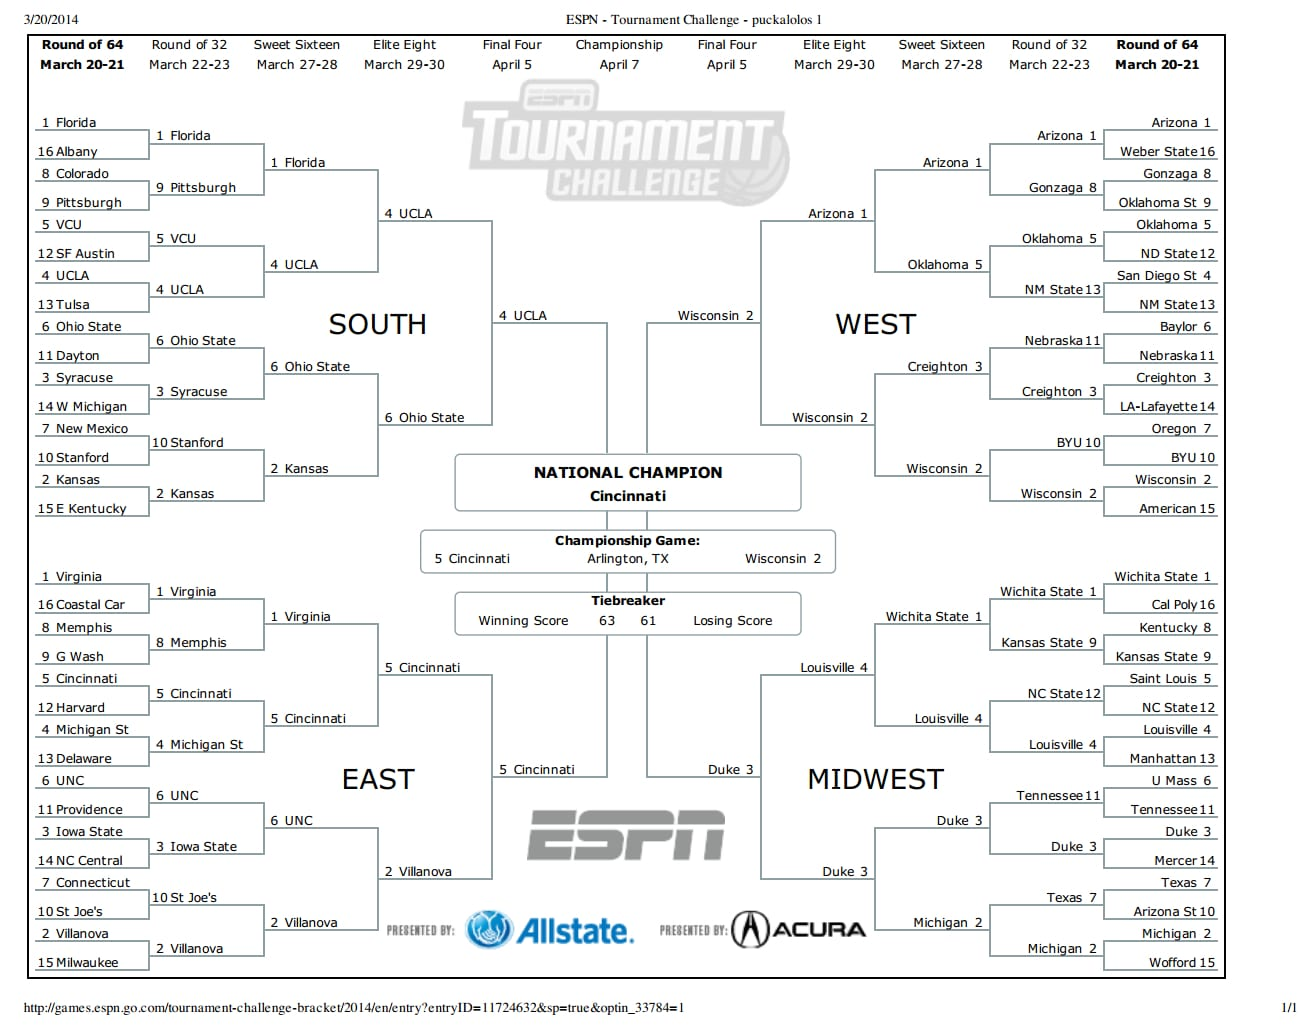 Just in case anyone needs help with their bracket, here's mine. Copy at your own risk!